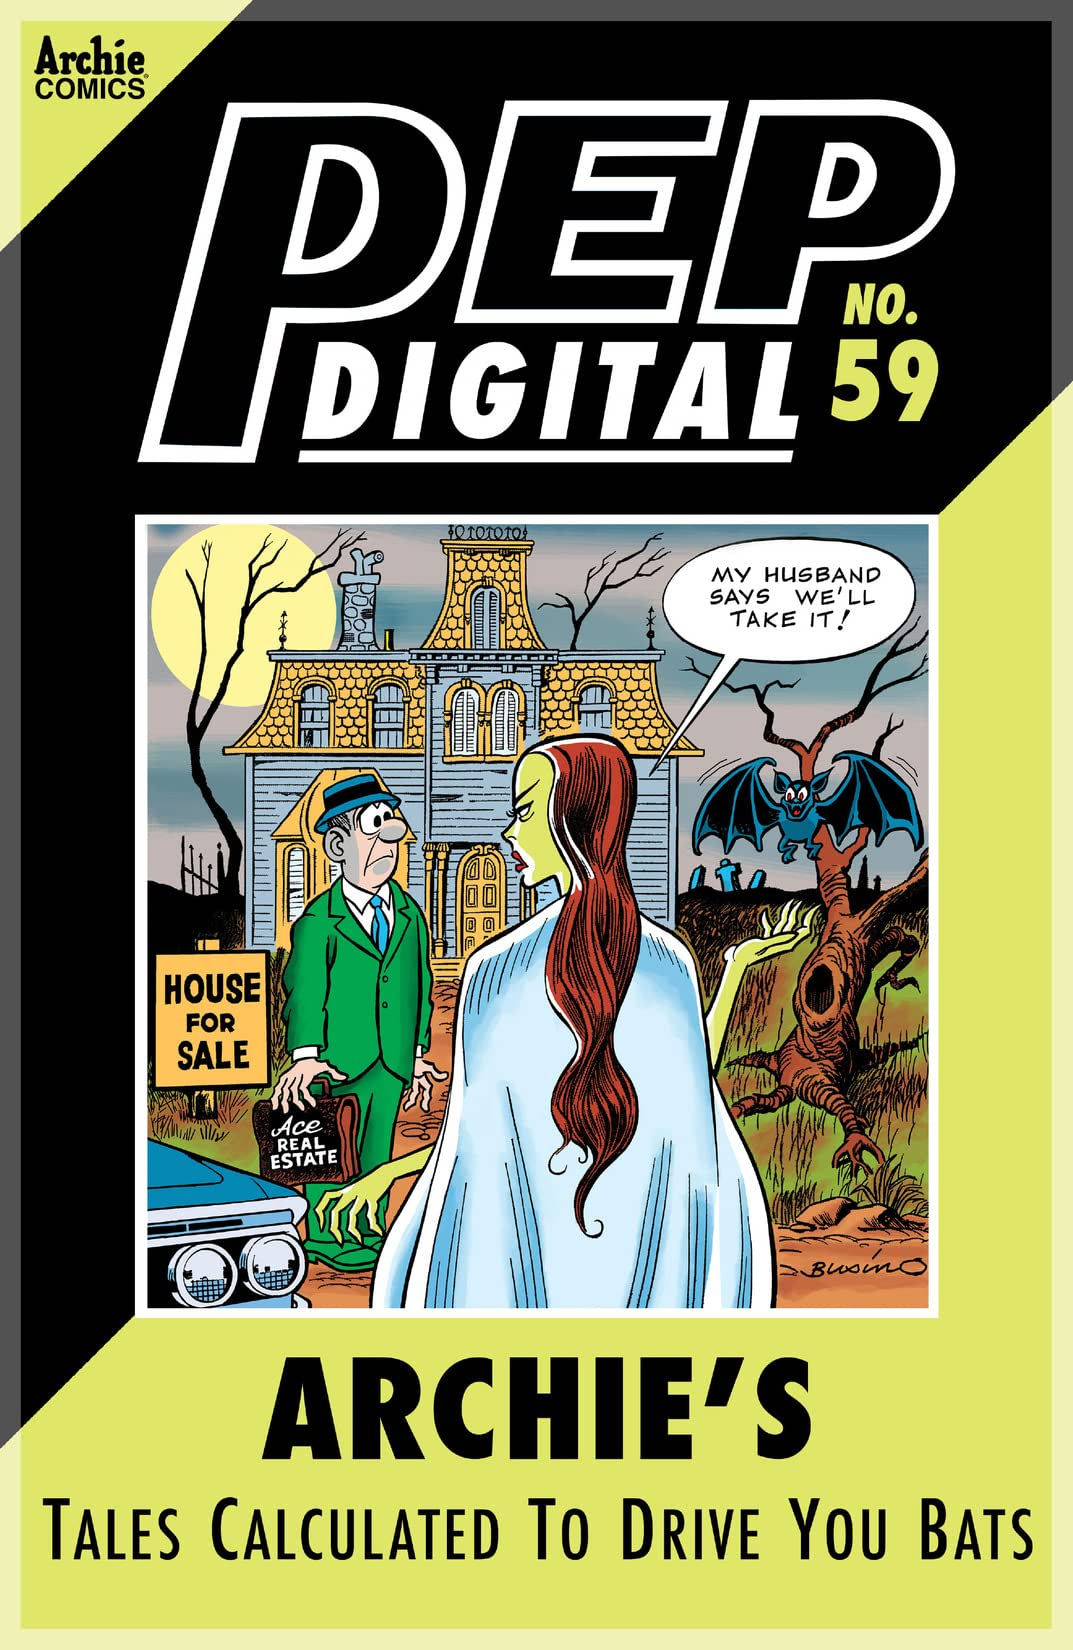 PEP Digital #59: Archie's Tales Calculated to Drive You Bats